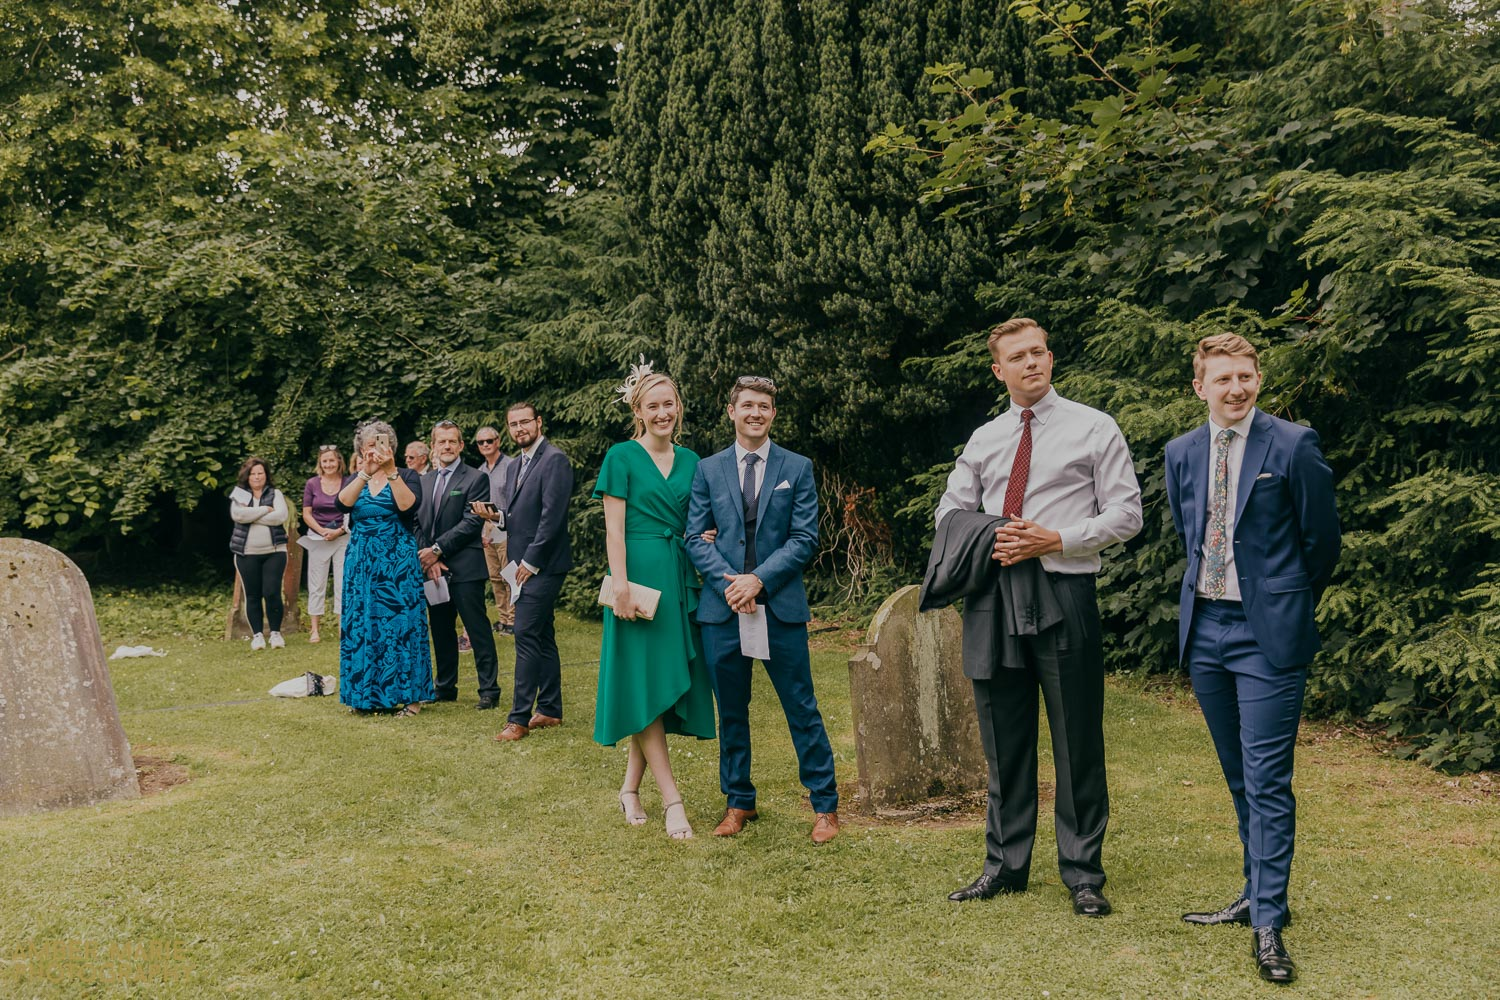 candid wedding photo of guests waiting outside church